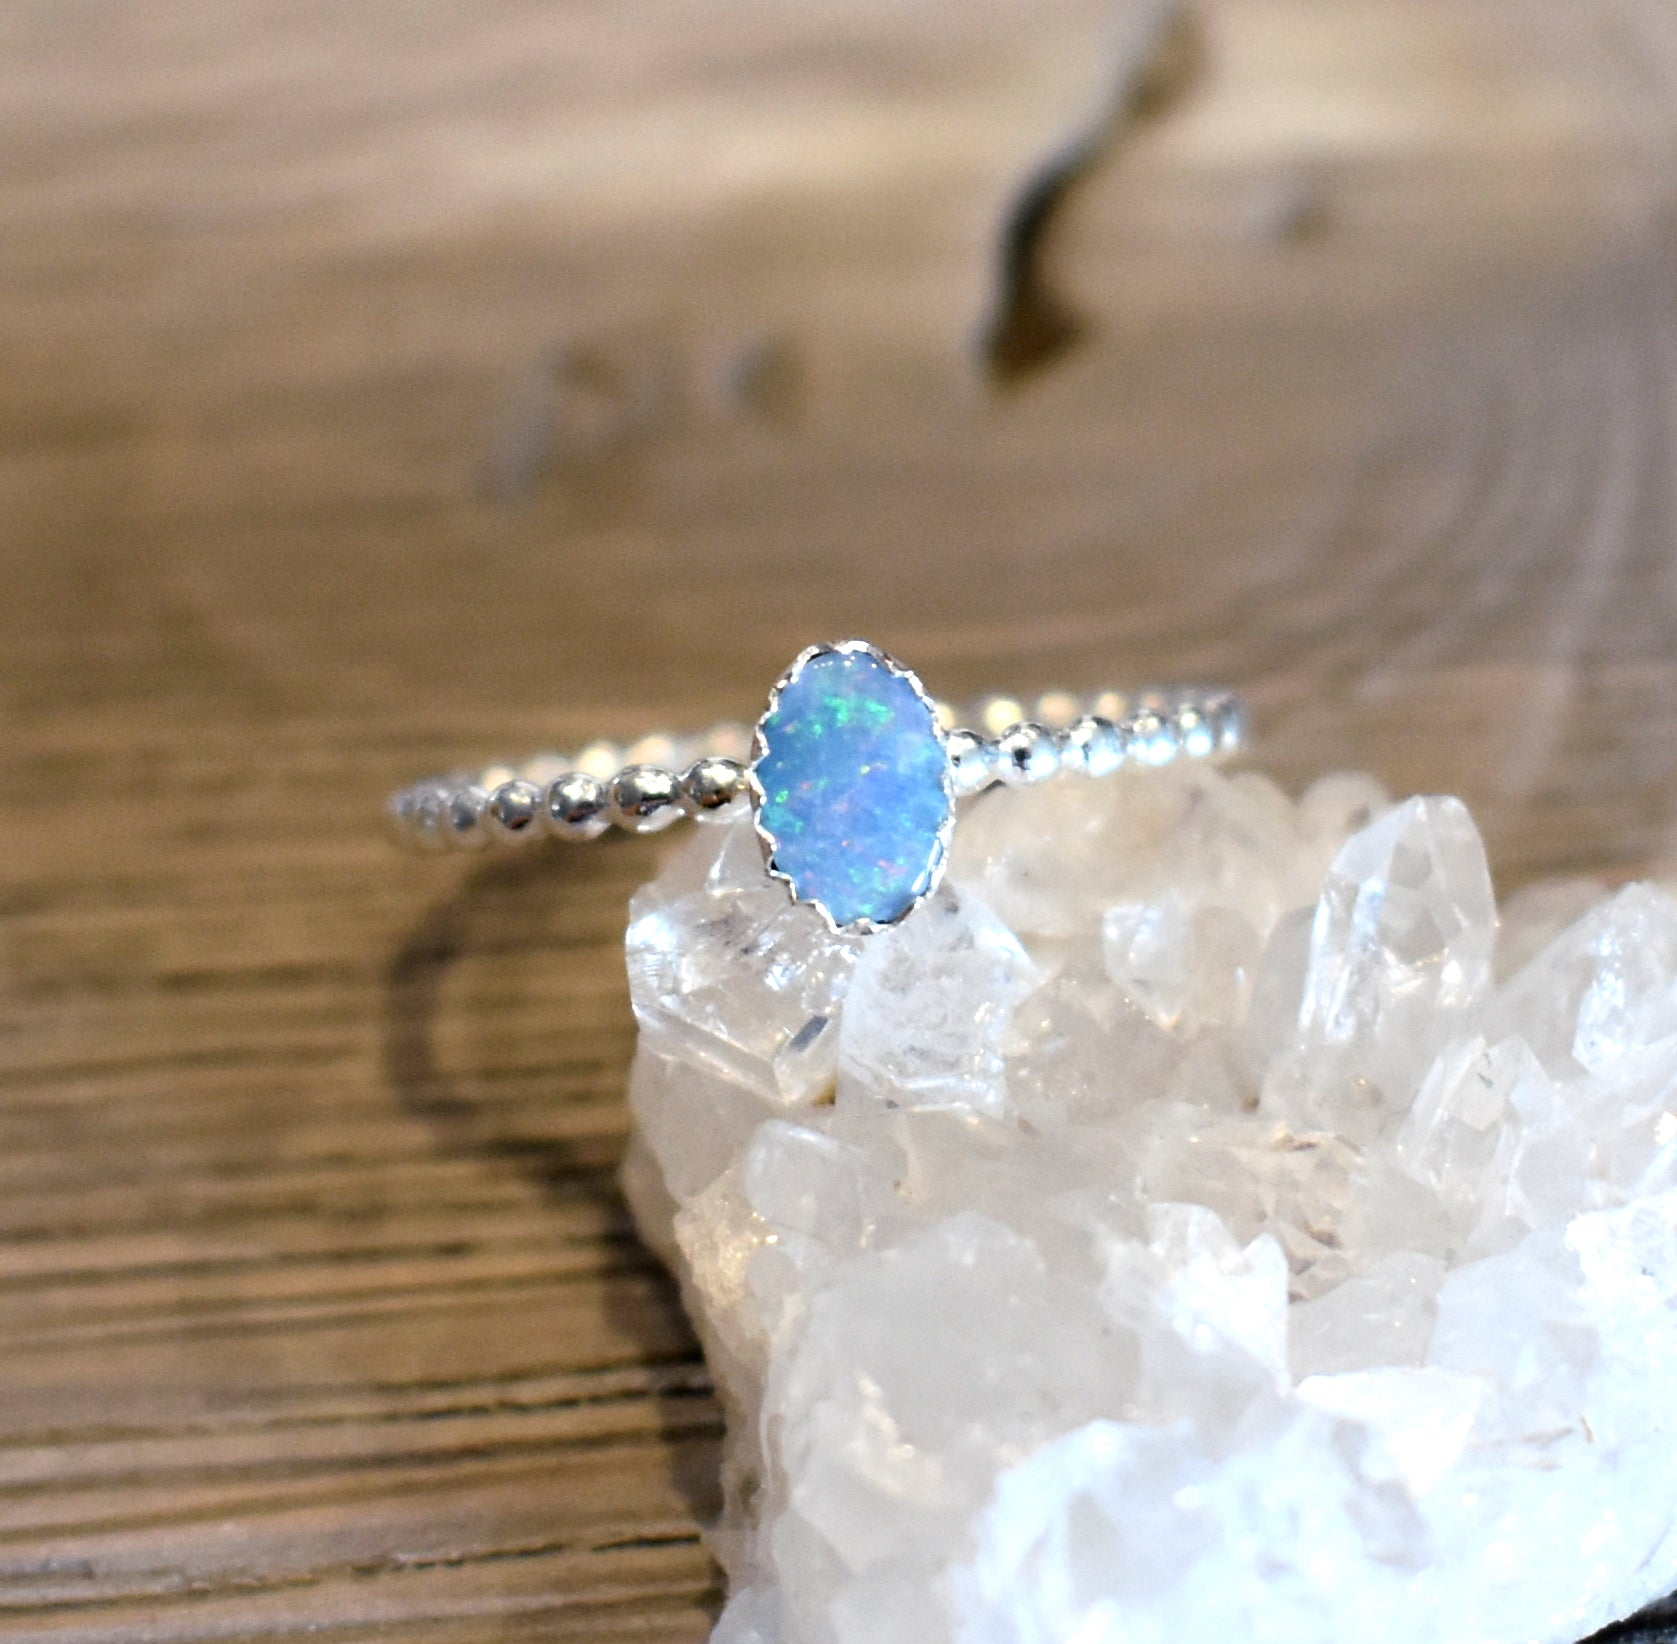 Opal Ring, Australian Opal Ring, October birthstone ring, libra ring, silver stacking ring, birthstone ring, october ring, scorpio ring